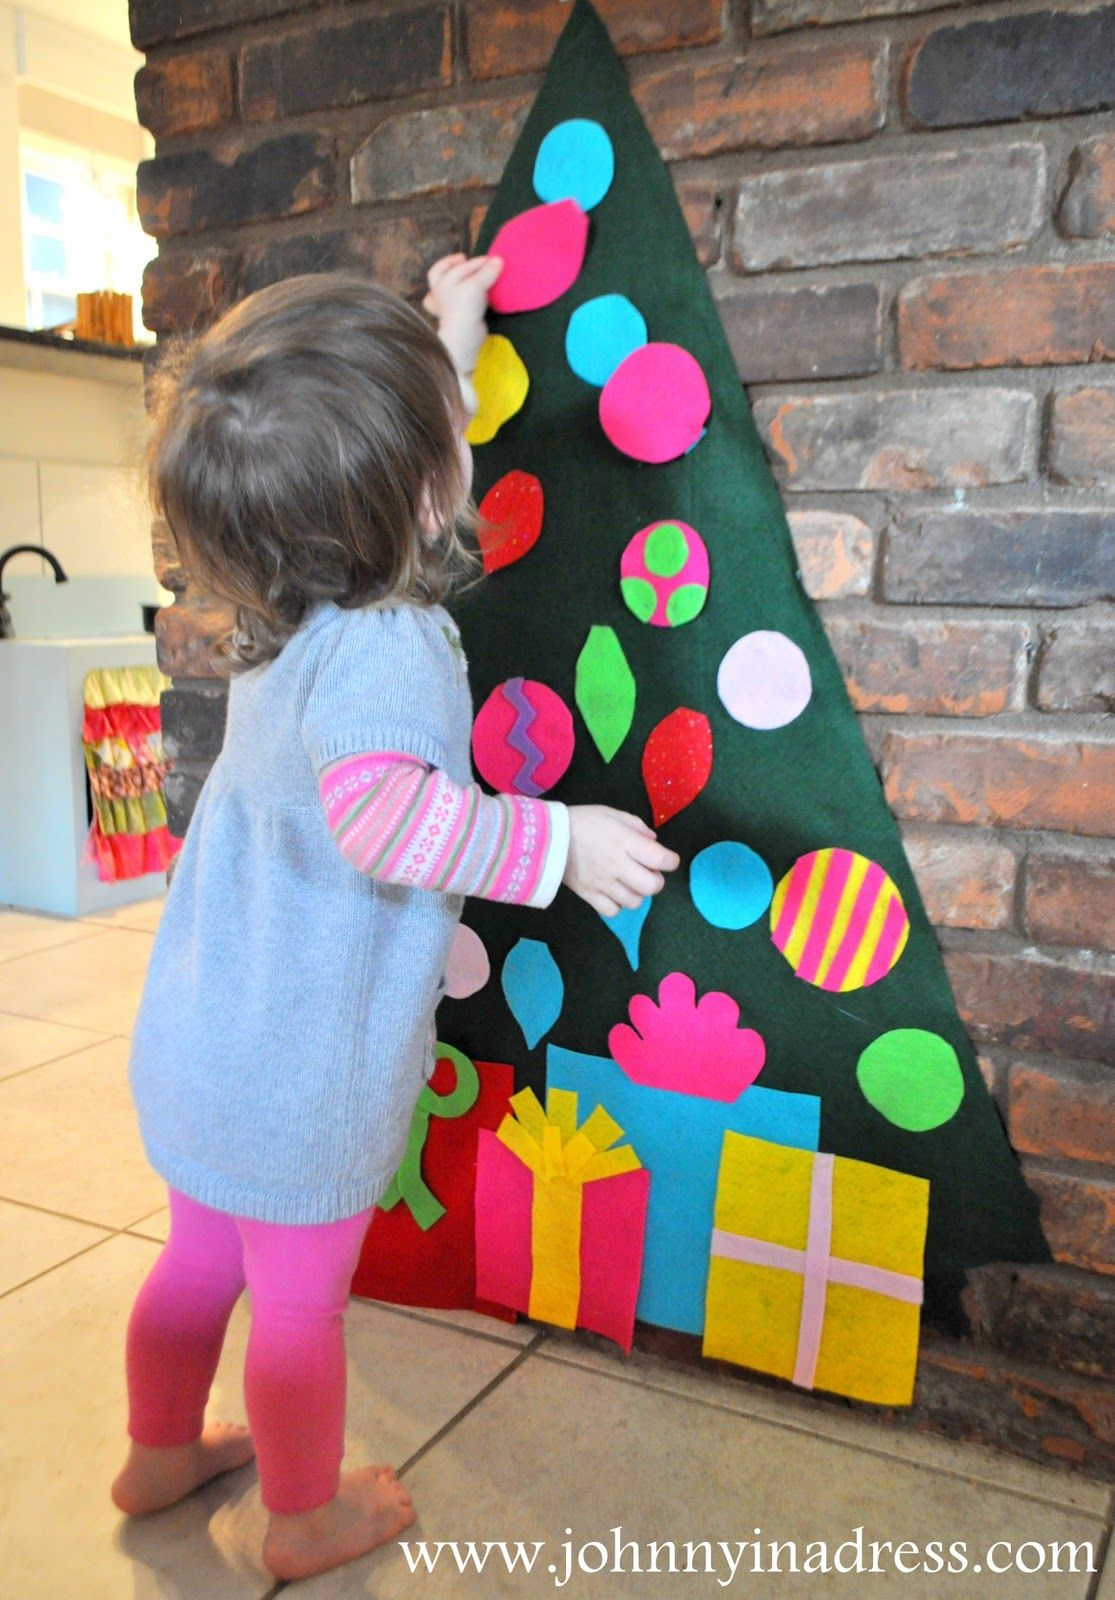 Felt Christmas tree that young ones can decorate over and over again - super cute idea!